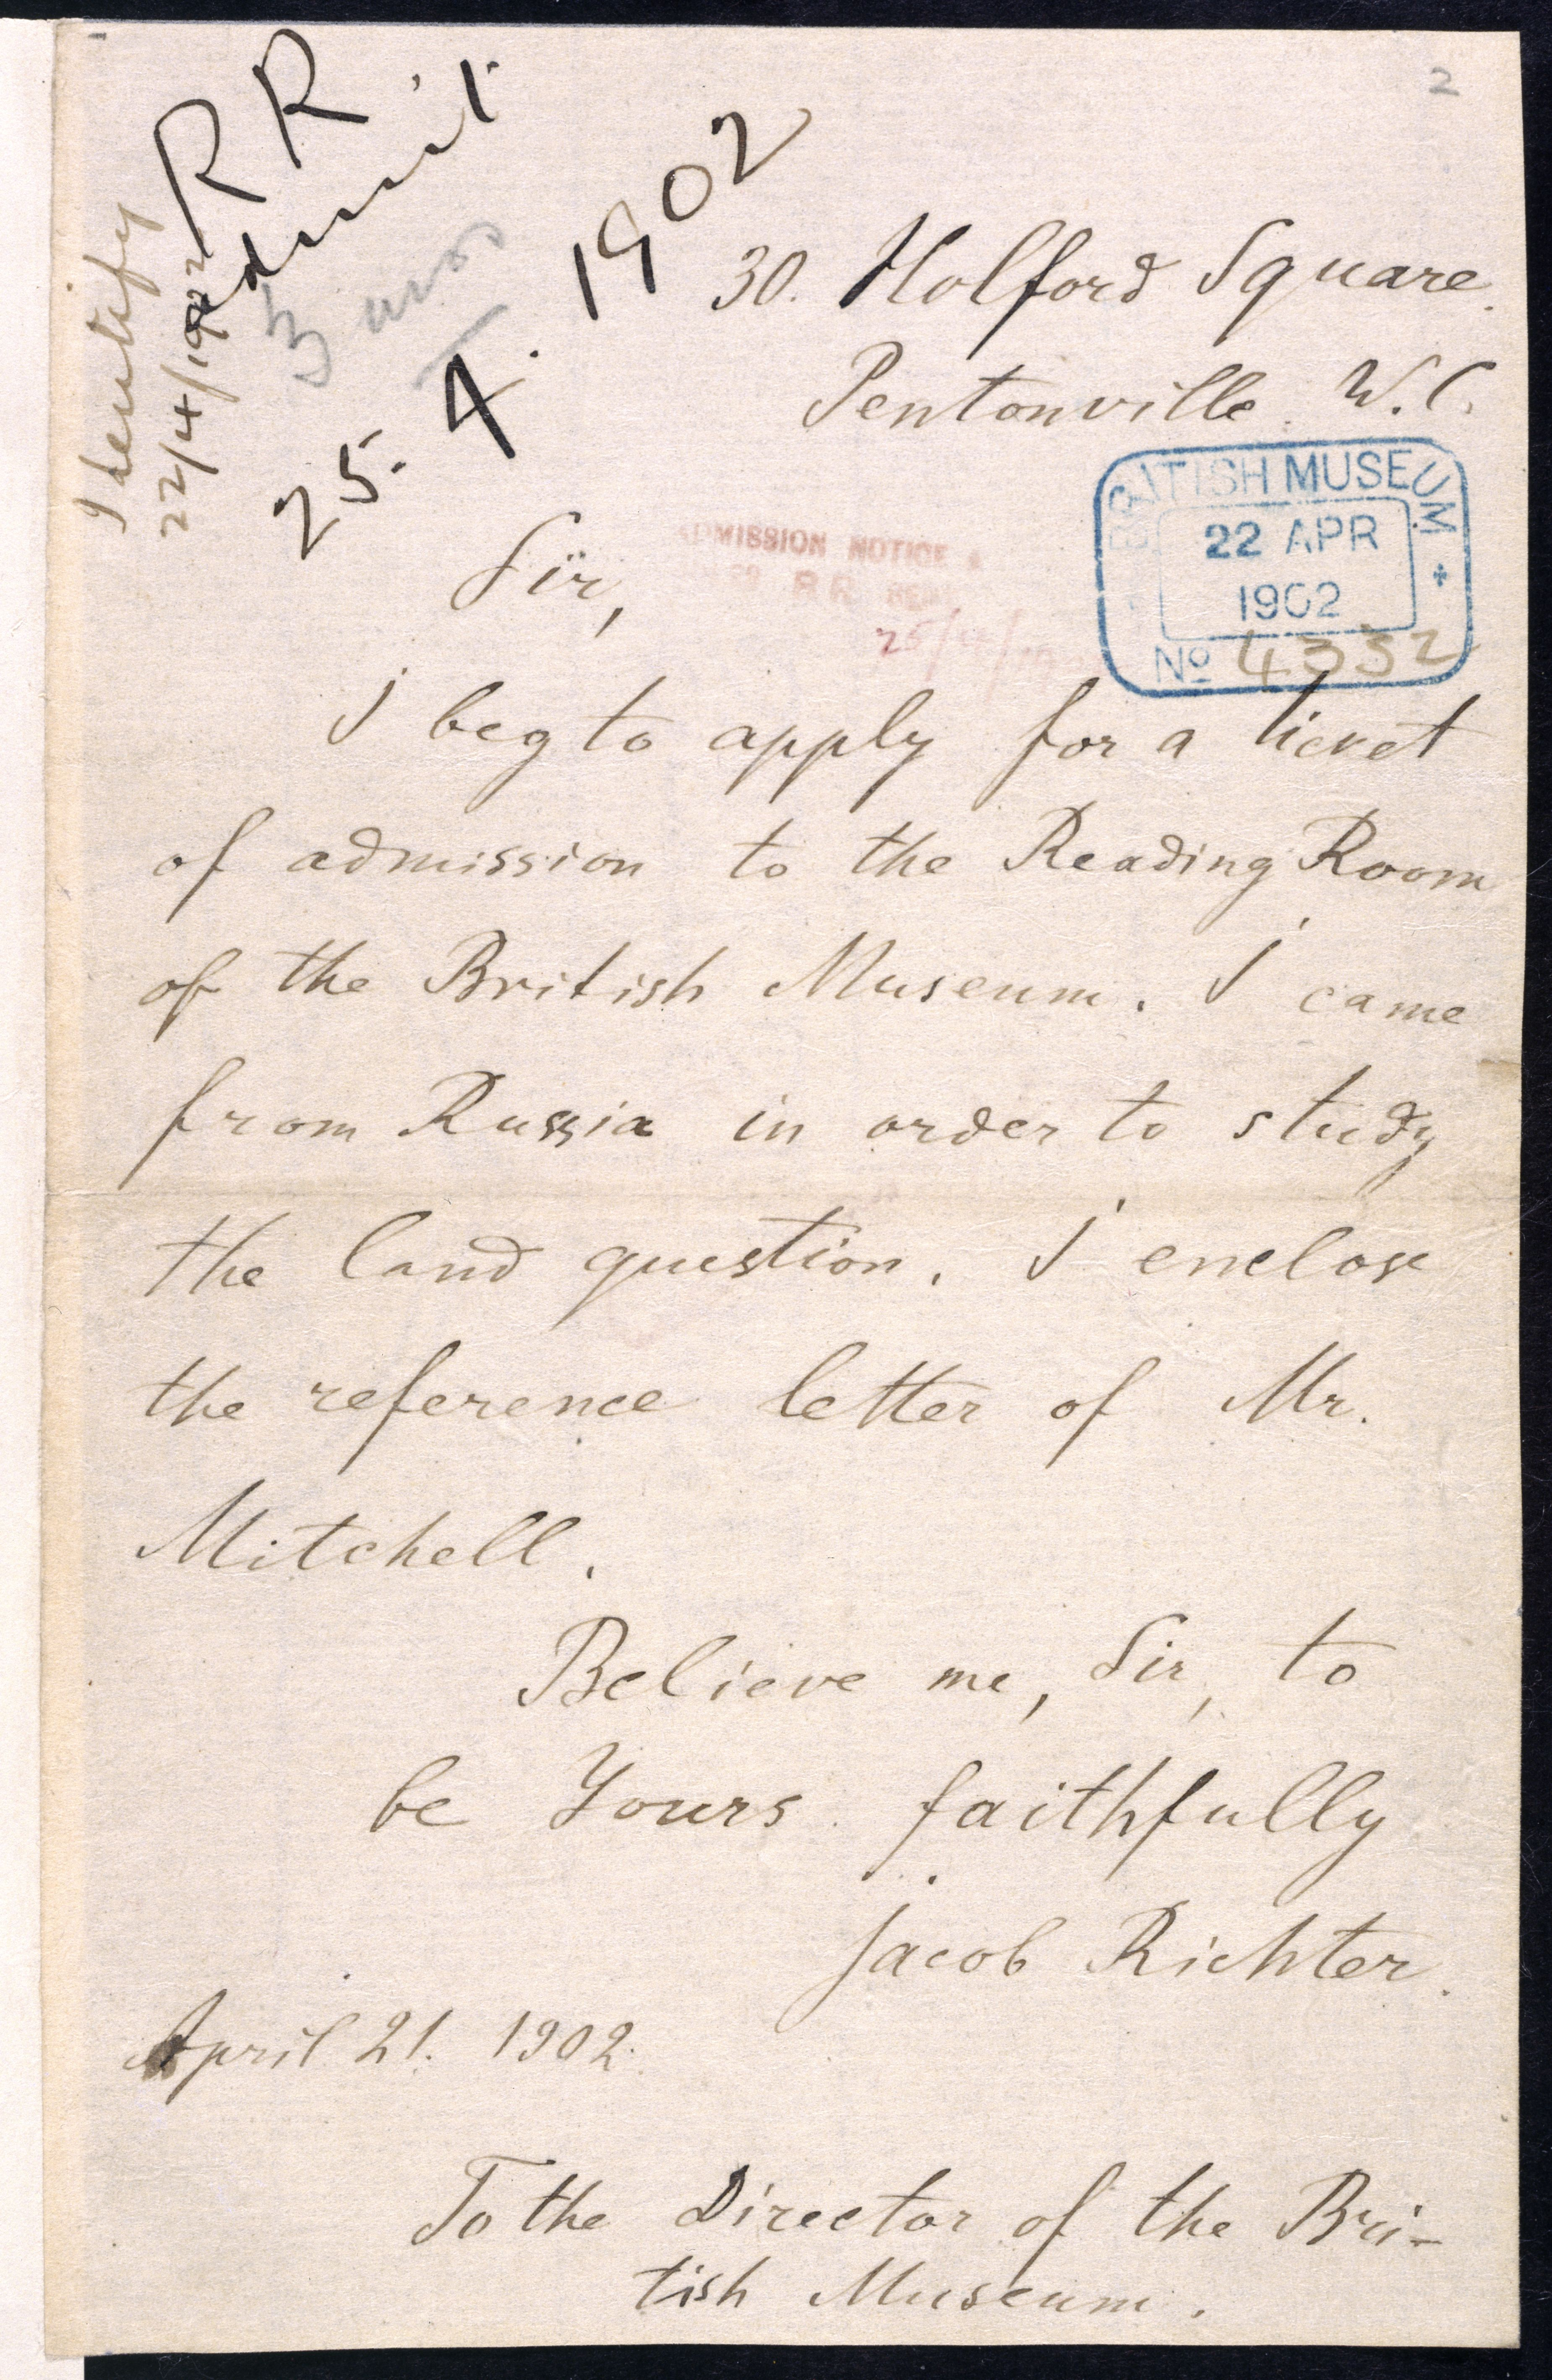 Letter from Vladimir Lenin requesting the use of the Reading Room at the British Museum (now British Library) copyright British Library